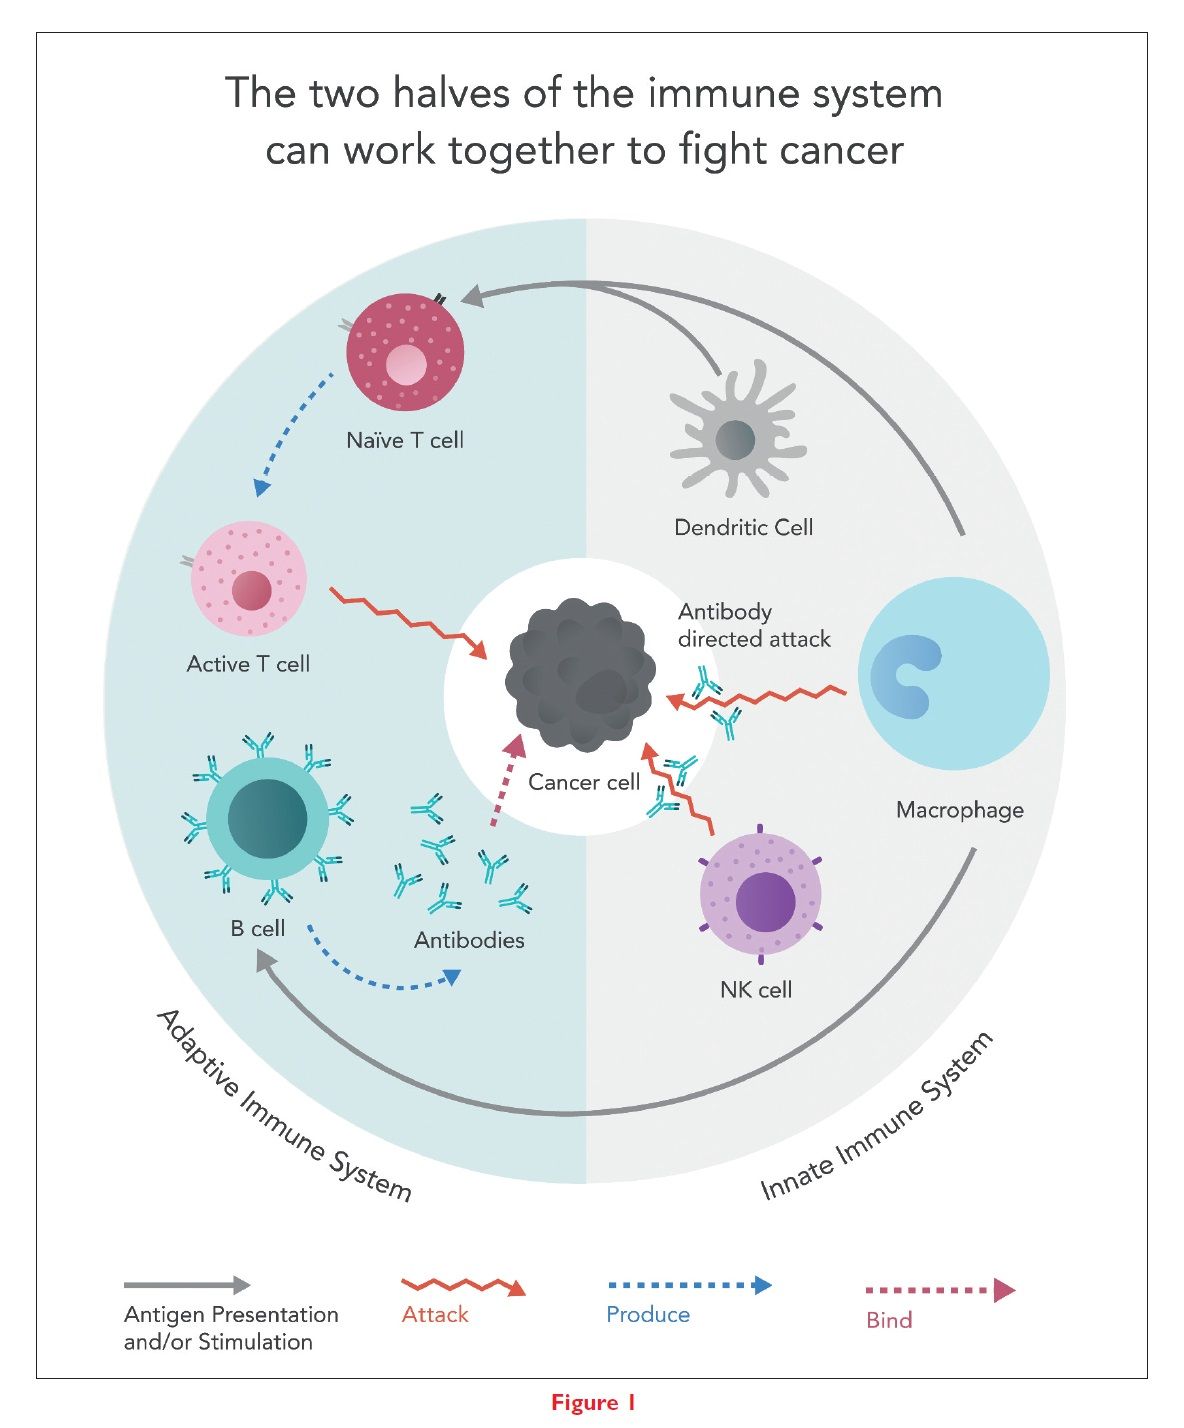 Figure 1 The two halves of the immune system can work together to fight cancer